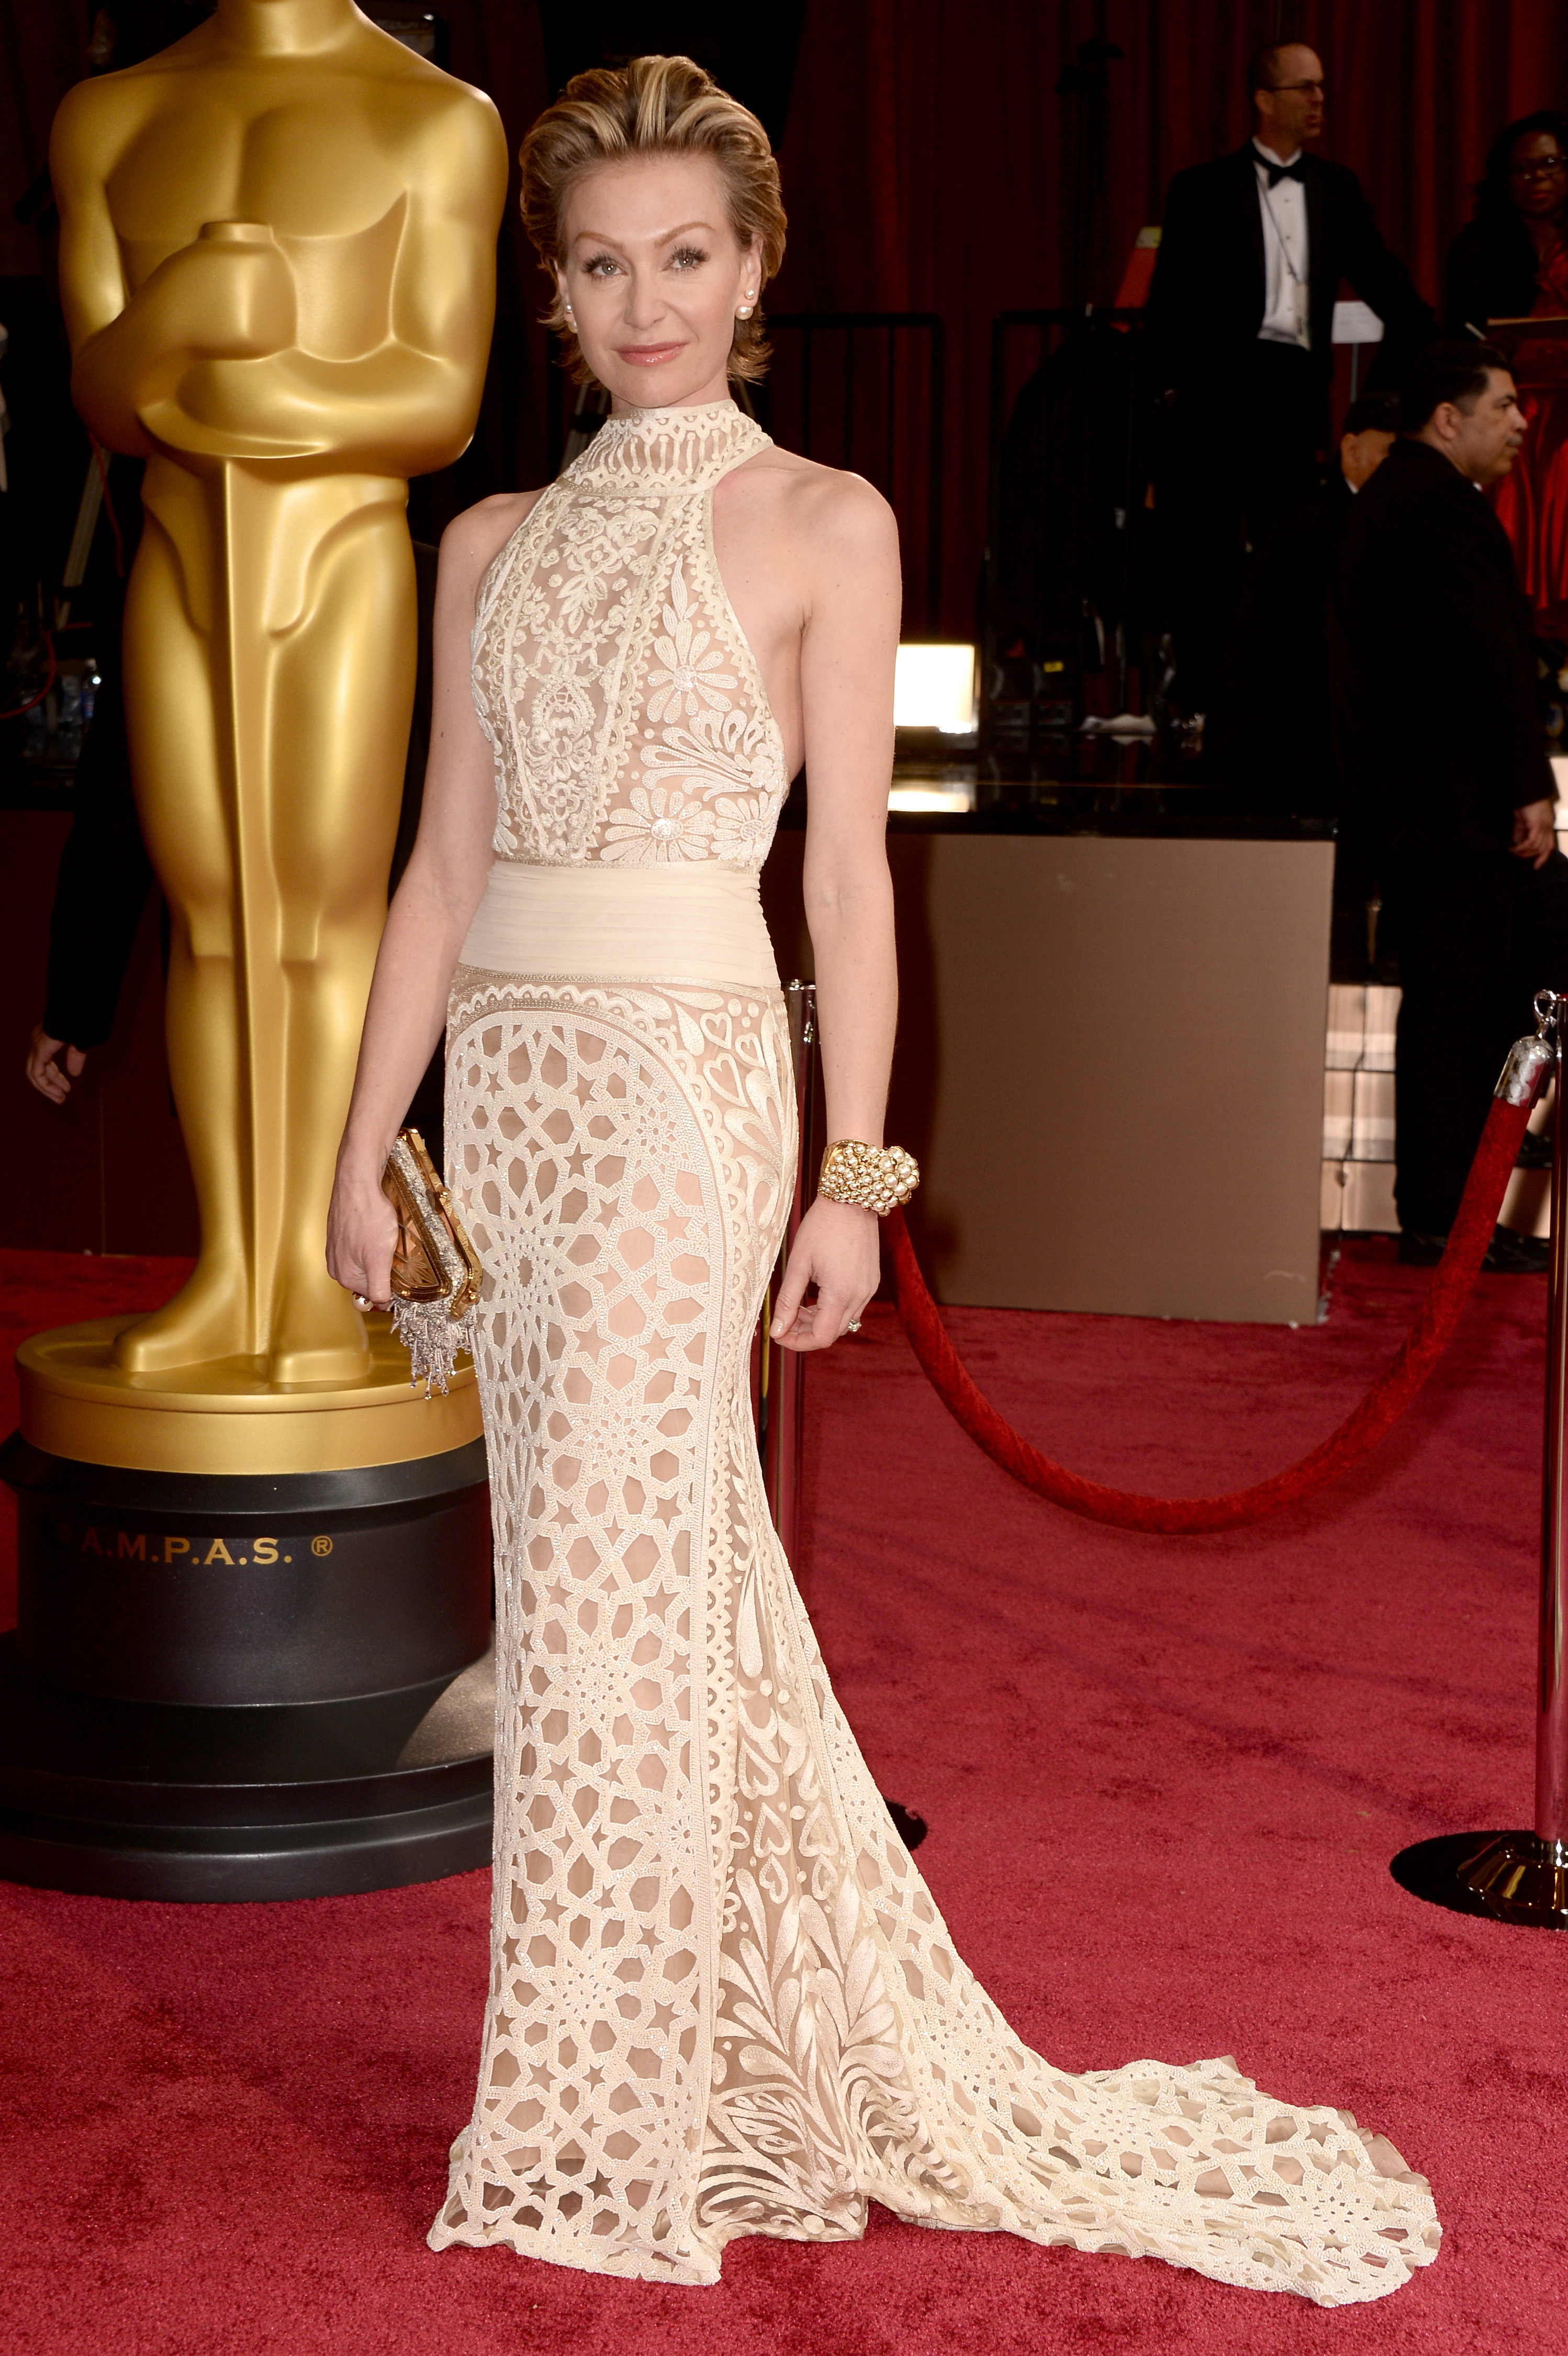 The Oscars Worst Red Carpet Fashions Did These Folks